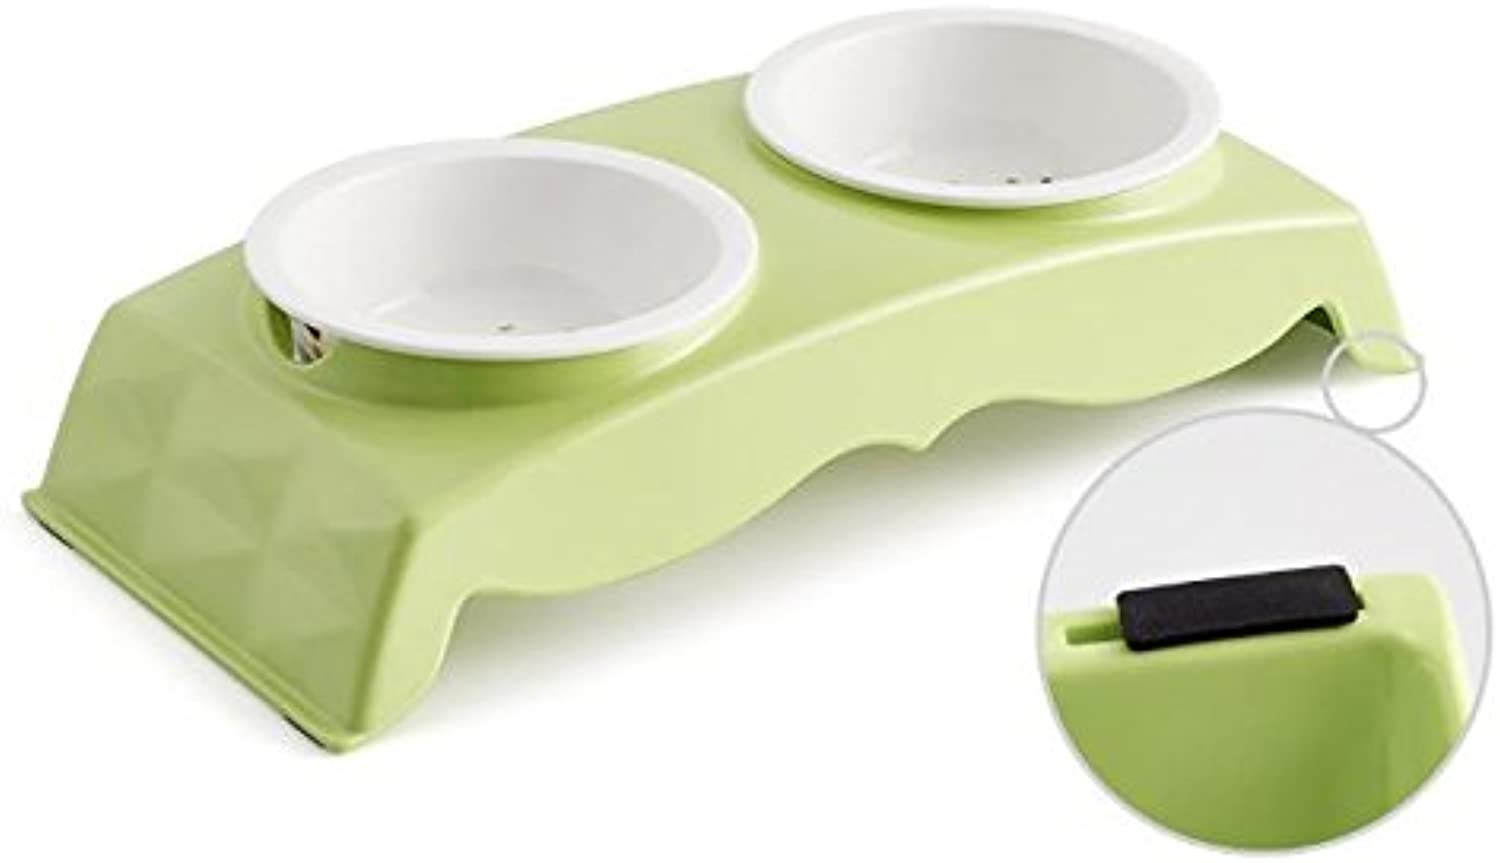 JEZBSY Melamine Pet Bowl for Food and Water Bowls Pet Feeders Double Bowls SetStainless and Ceremic Bowl